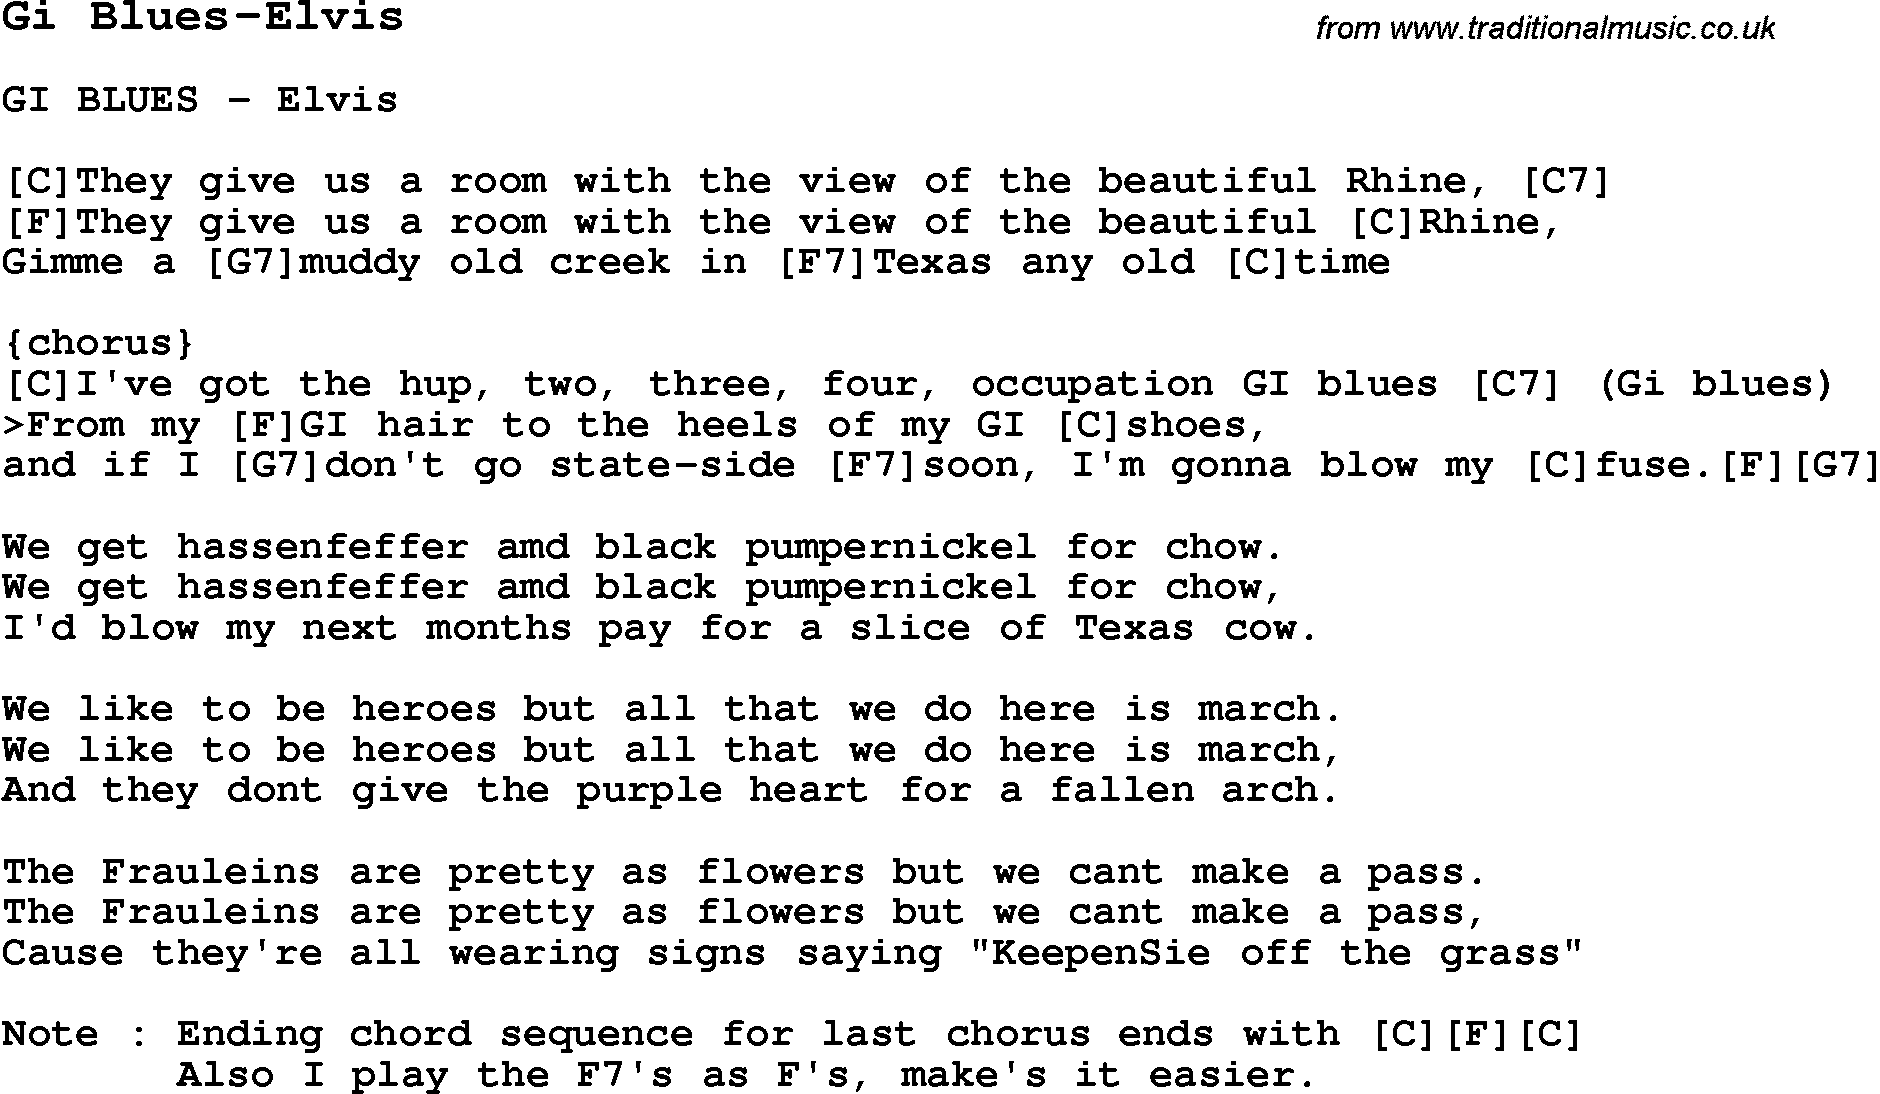 Blues Guitar Lesson For Gi Blues Elvis With Chords Tabs And Lyrics